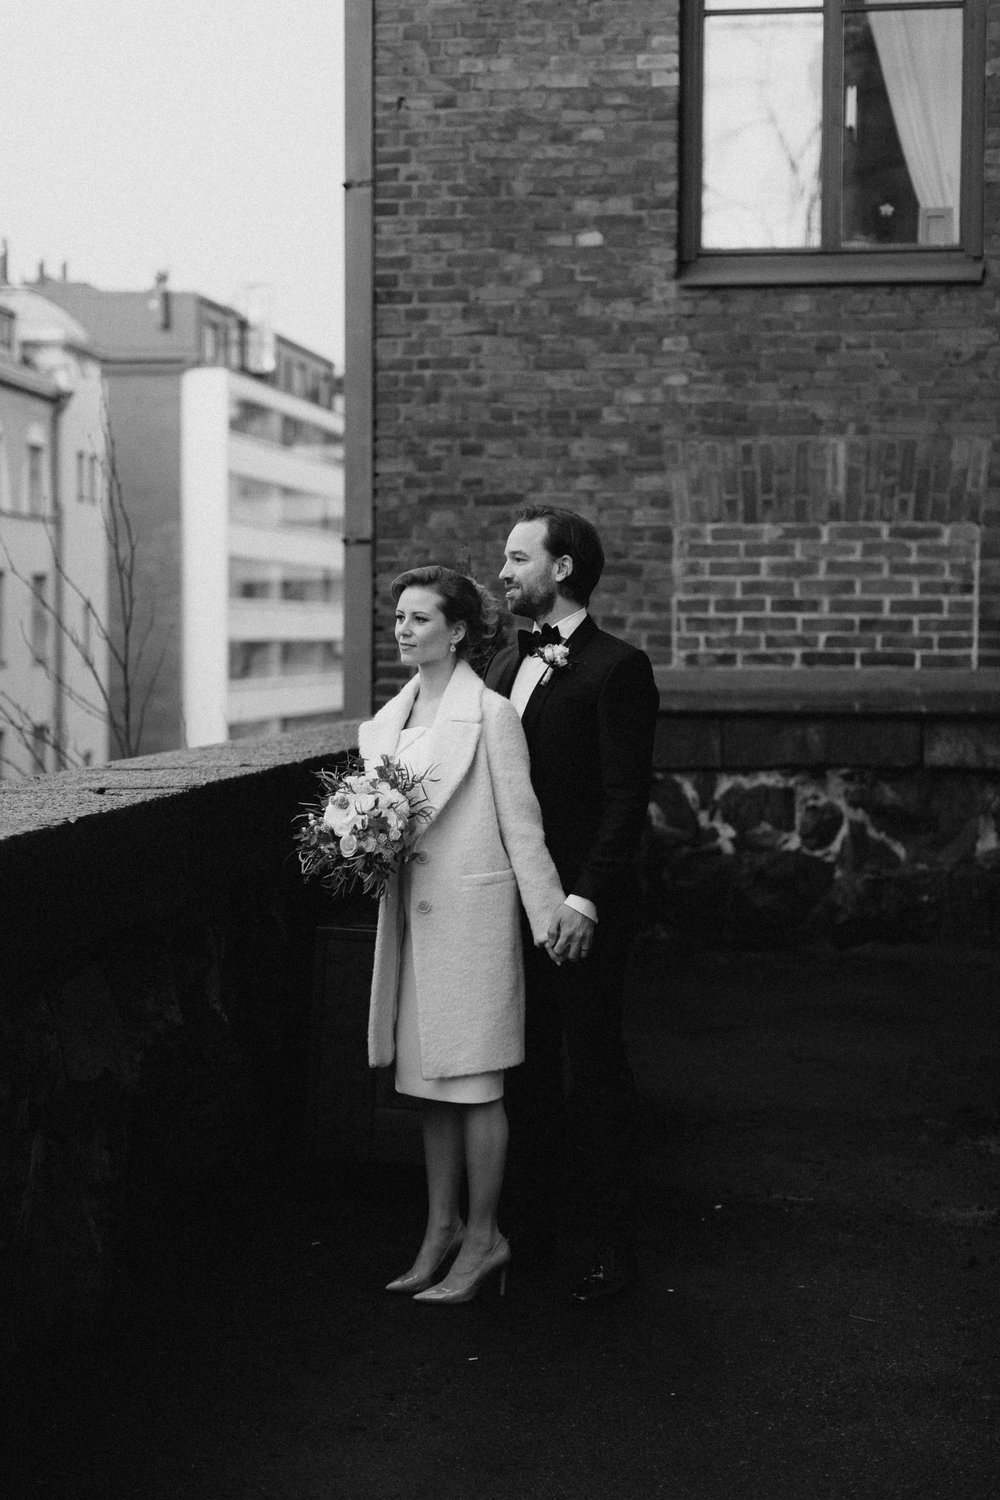 Maria + Topi | Photo by Patrick Karkkolainen Wedding Photographer | Helsinki Wedding Photographer-11.jpg